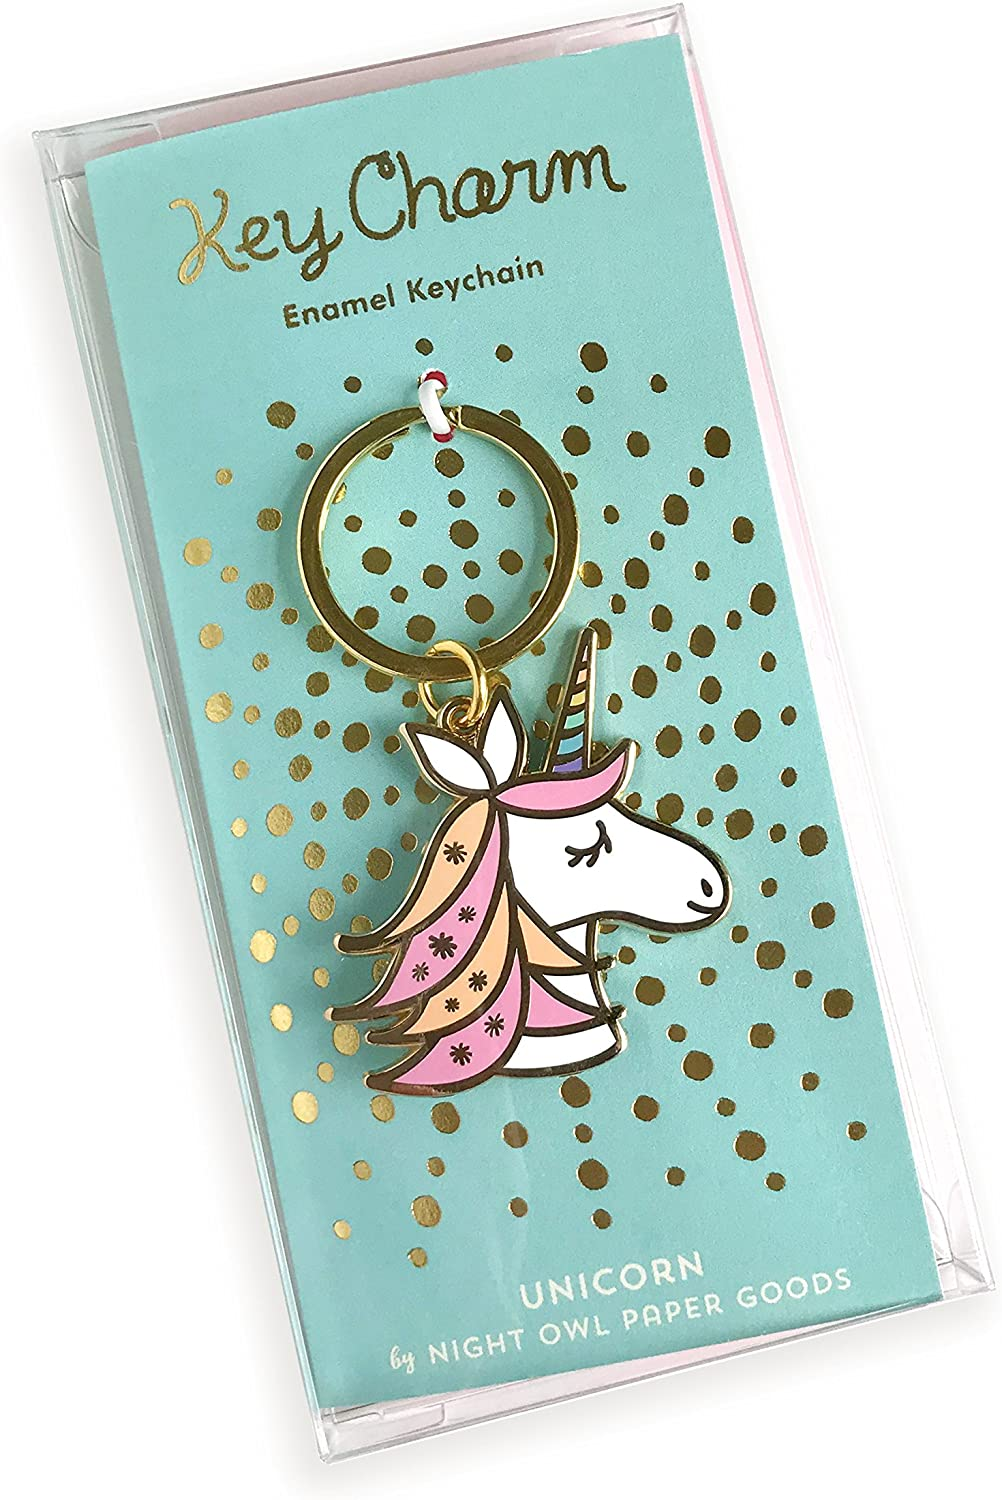 Night Owl Paper Goods Unicorn Enamel Keychain Gold